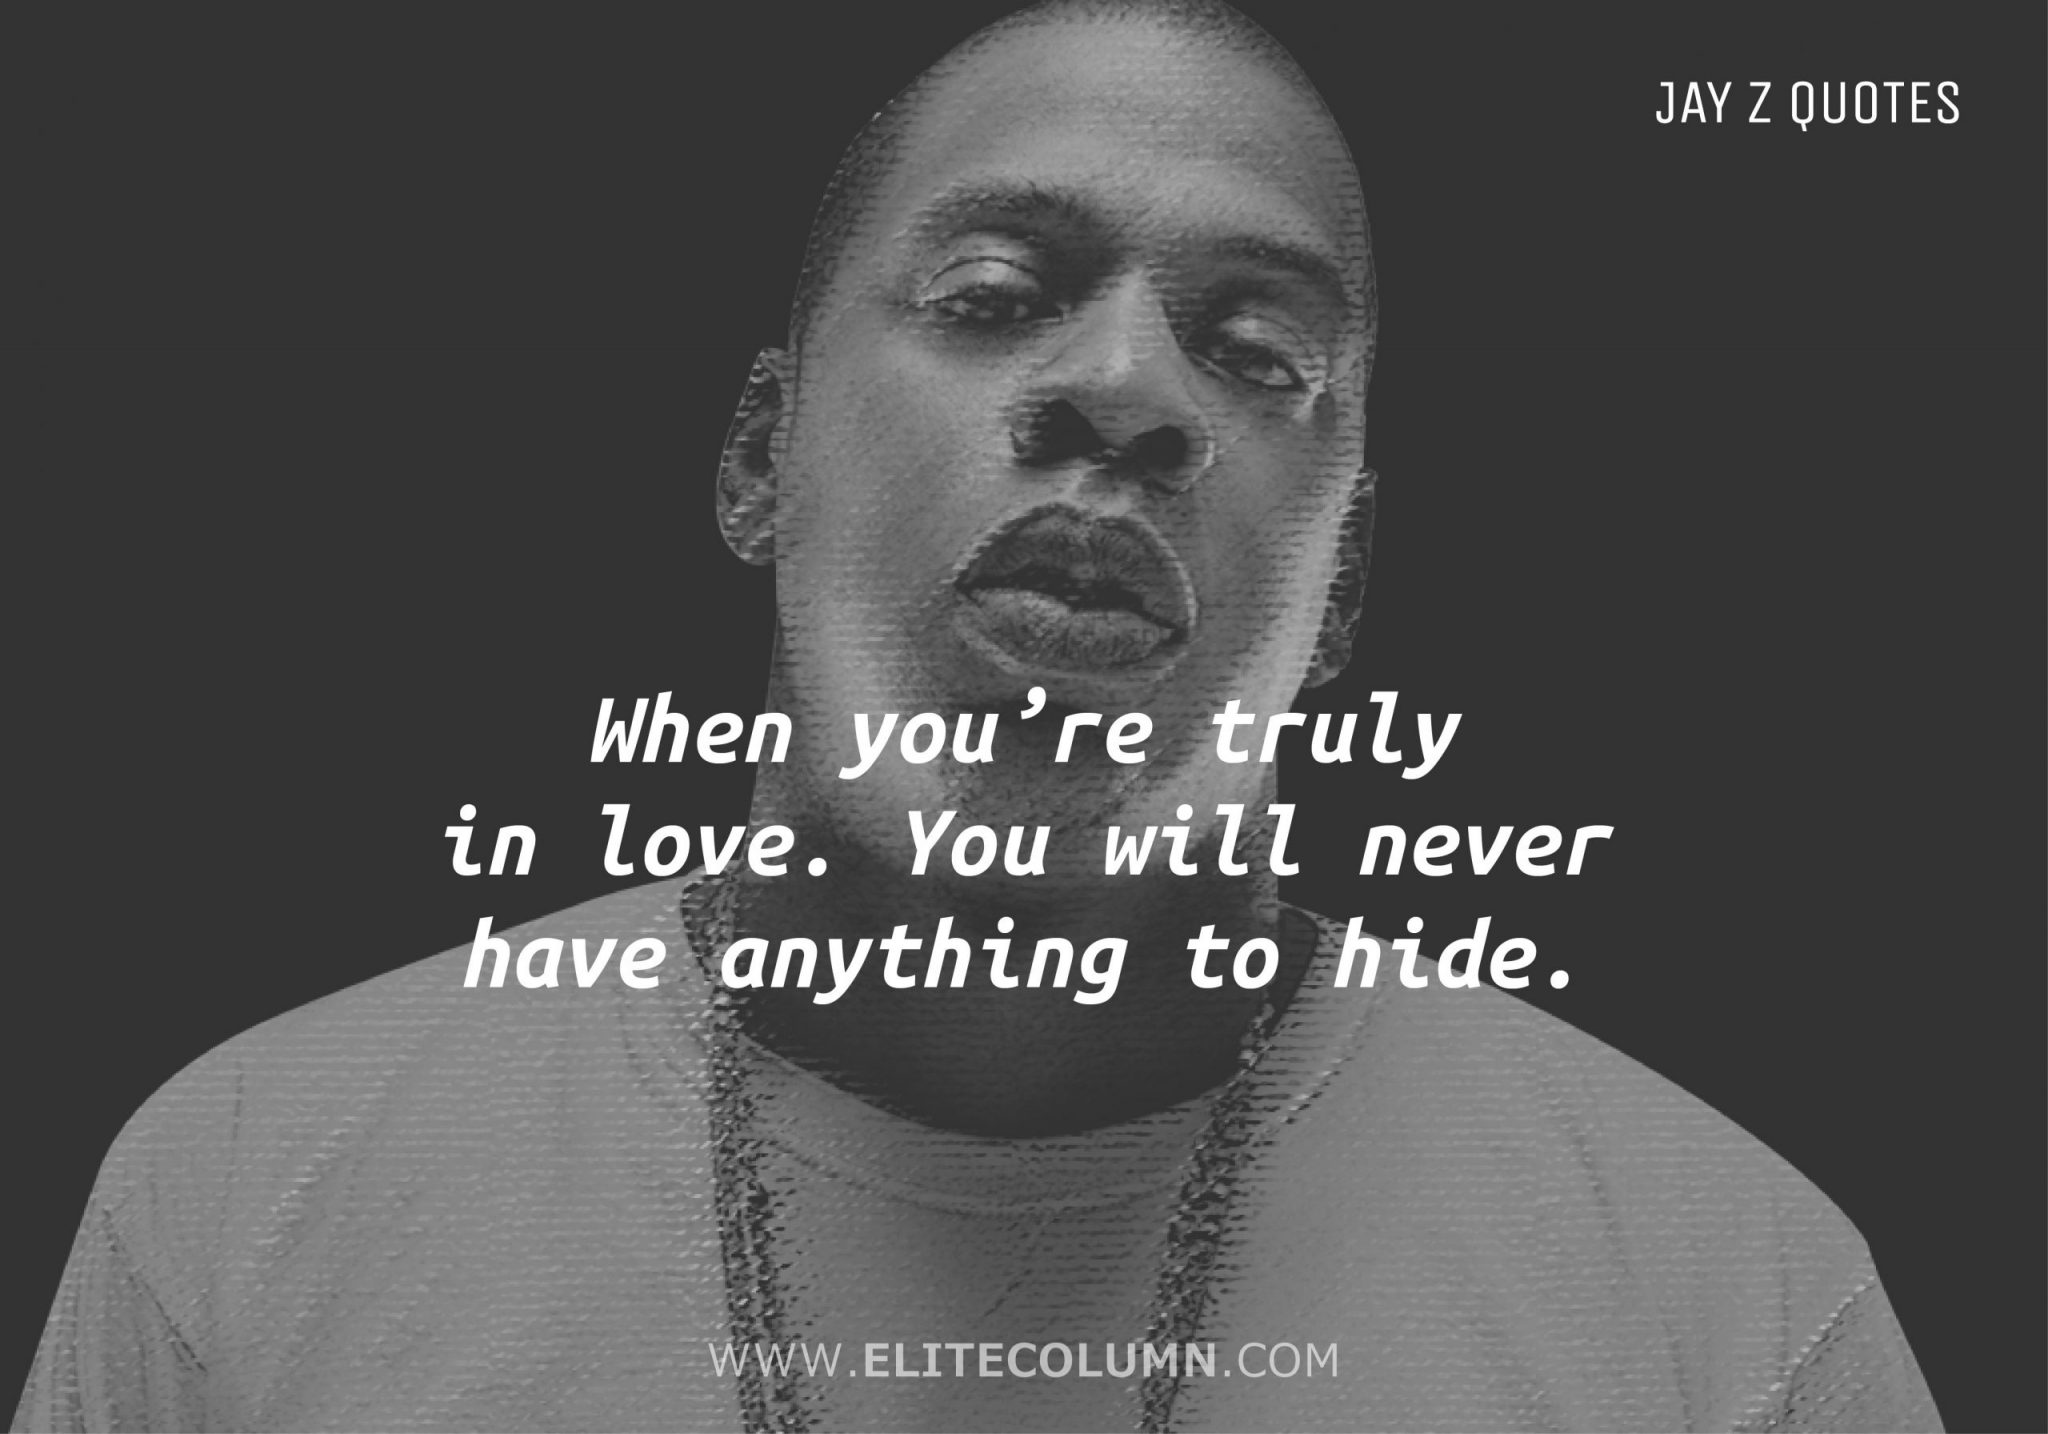 Jay Z Quotes (11)